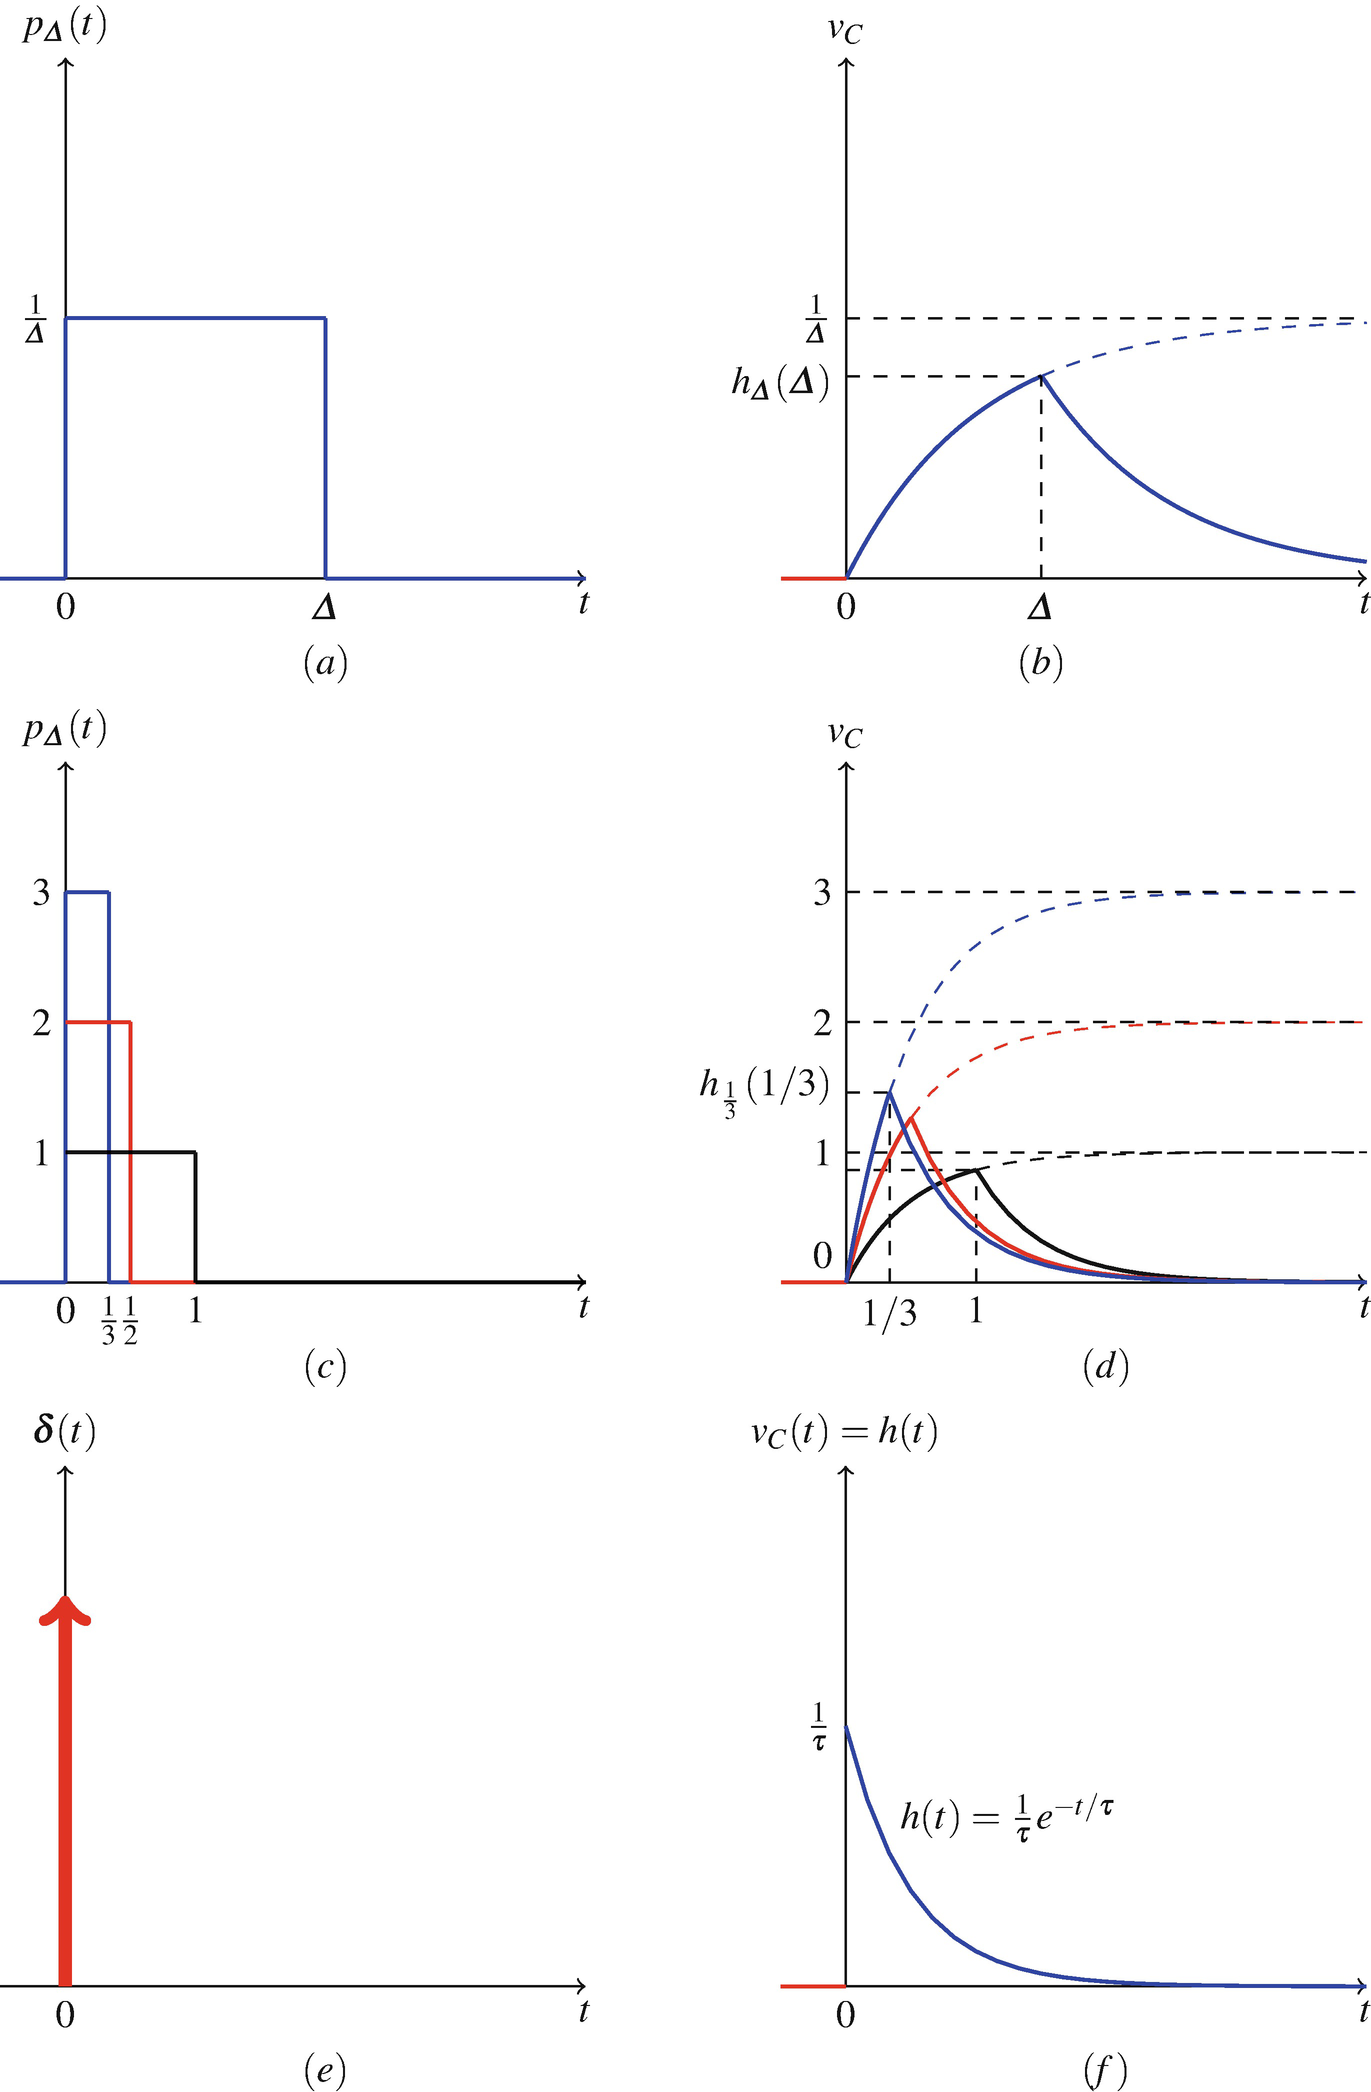 Dynamic Nonlinear Networks Springerlink Differential Equations Kvl Ohm S Law Rc Circuits Time Constant Open Image In New Window